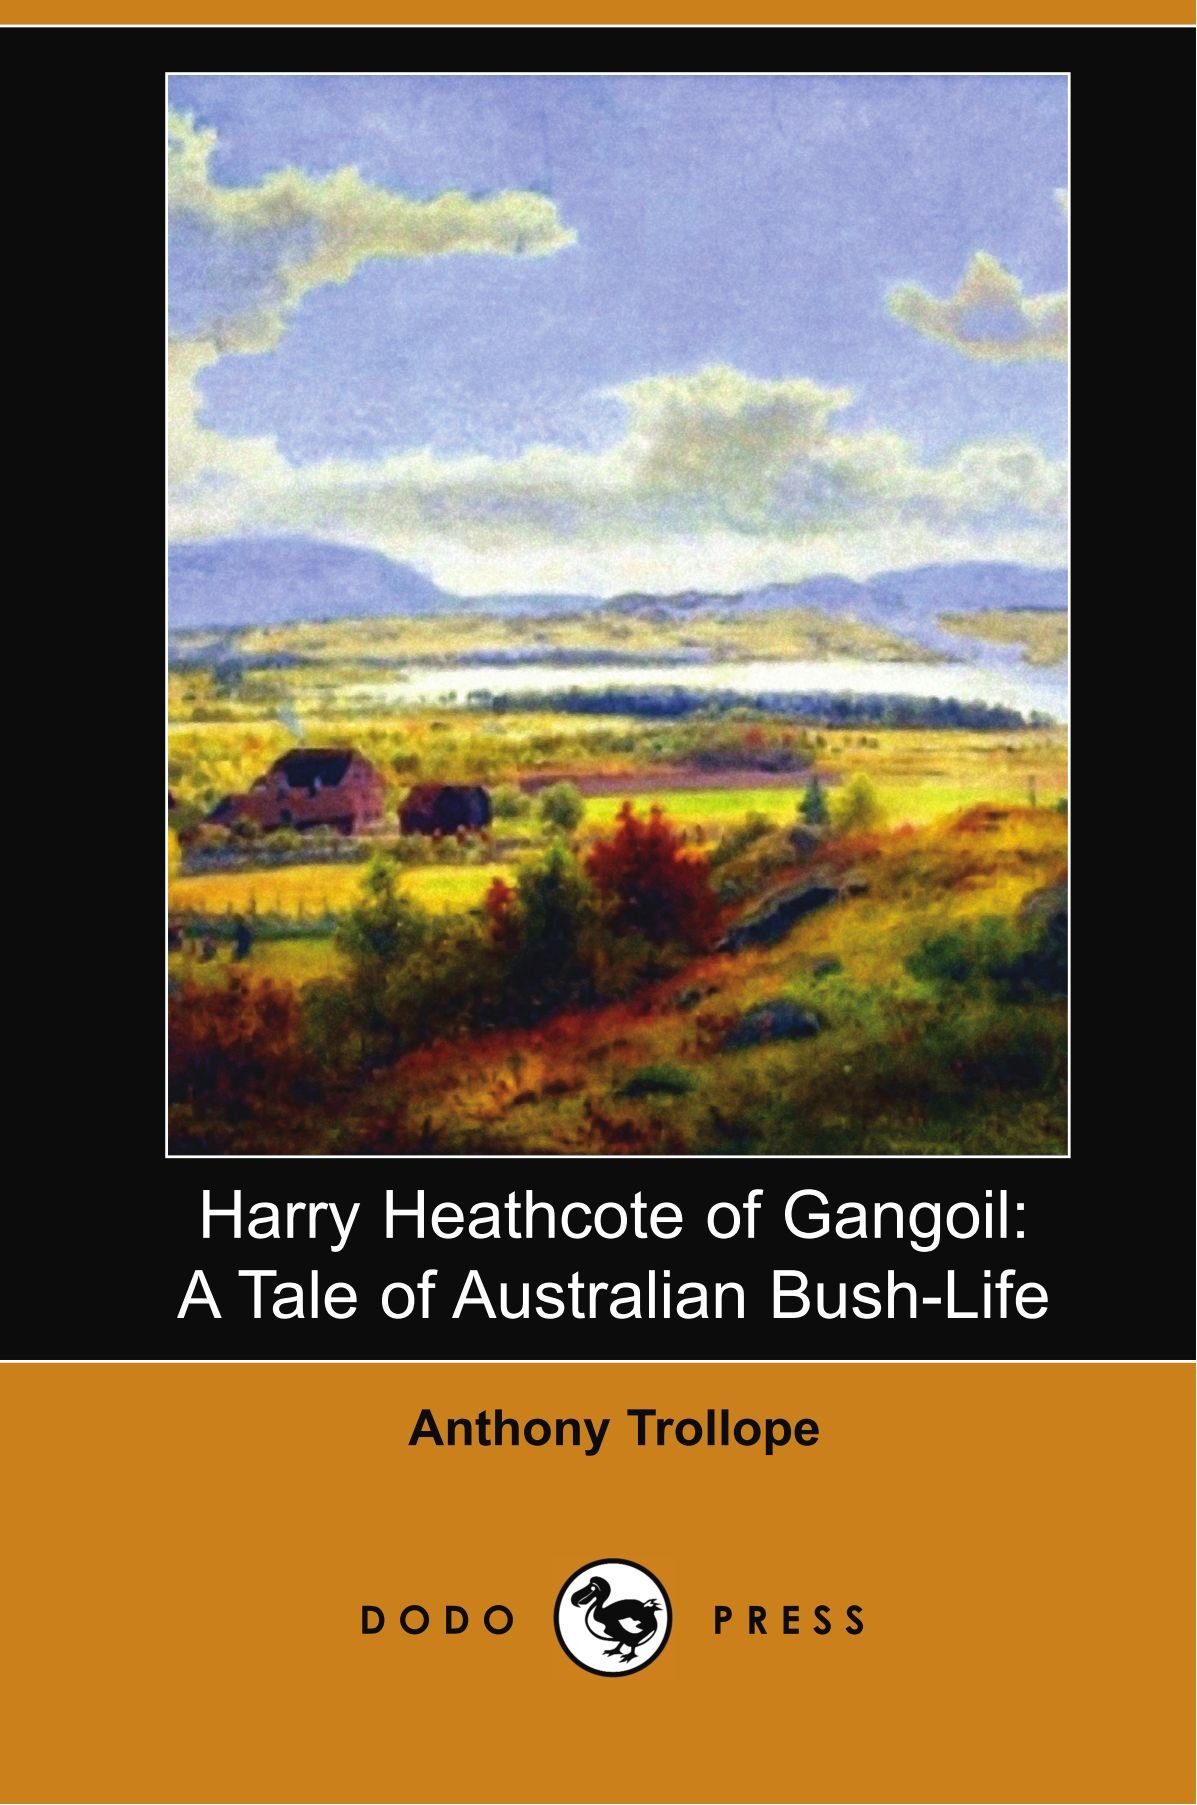 reading christmas harry heathcote of gangoil anthony trollope